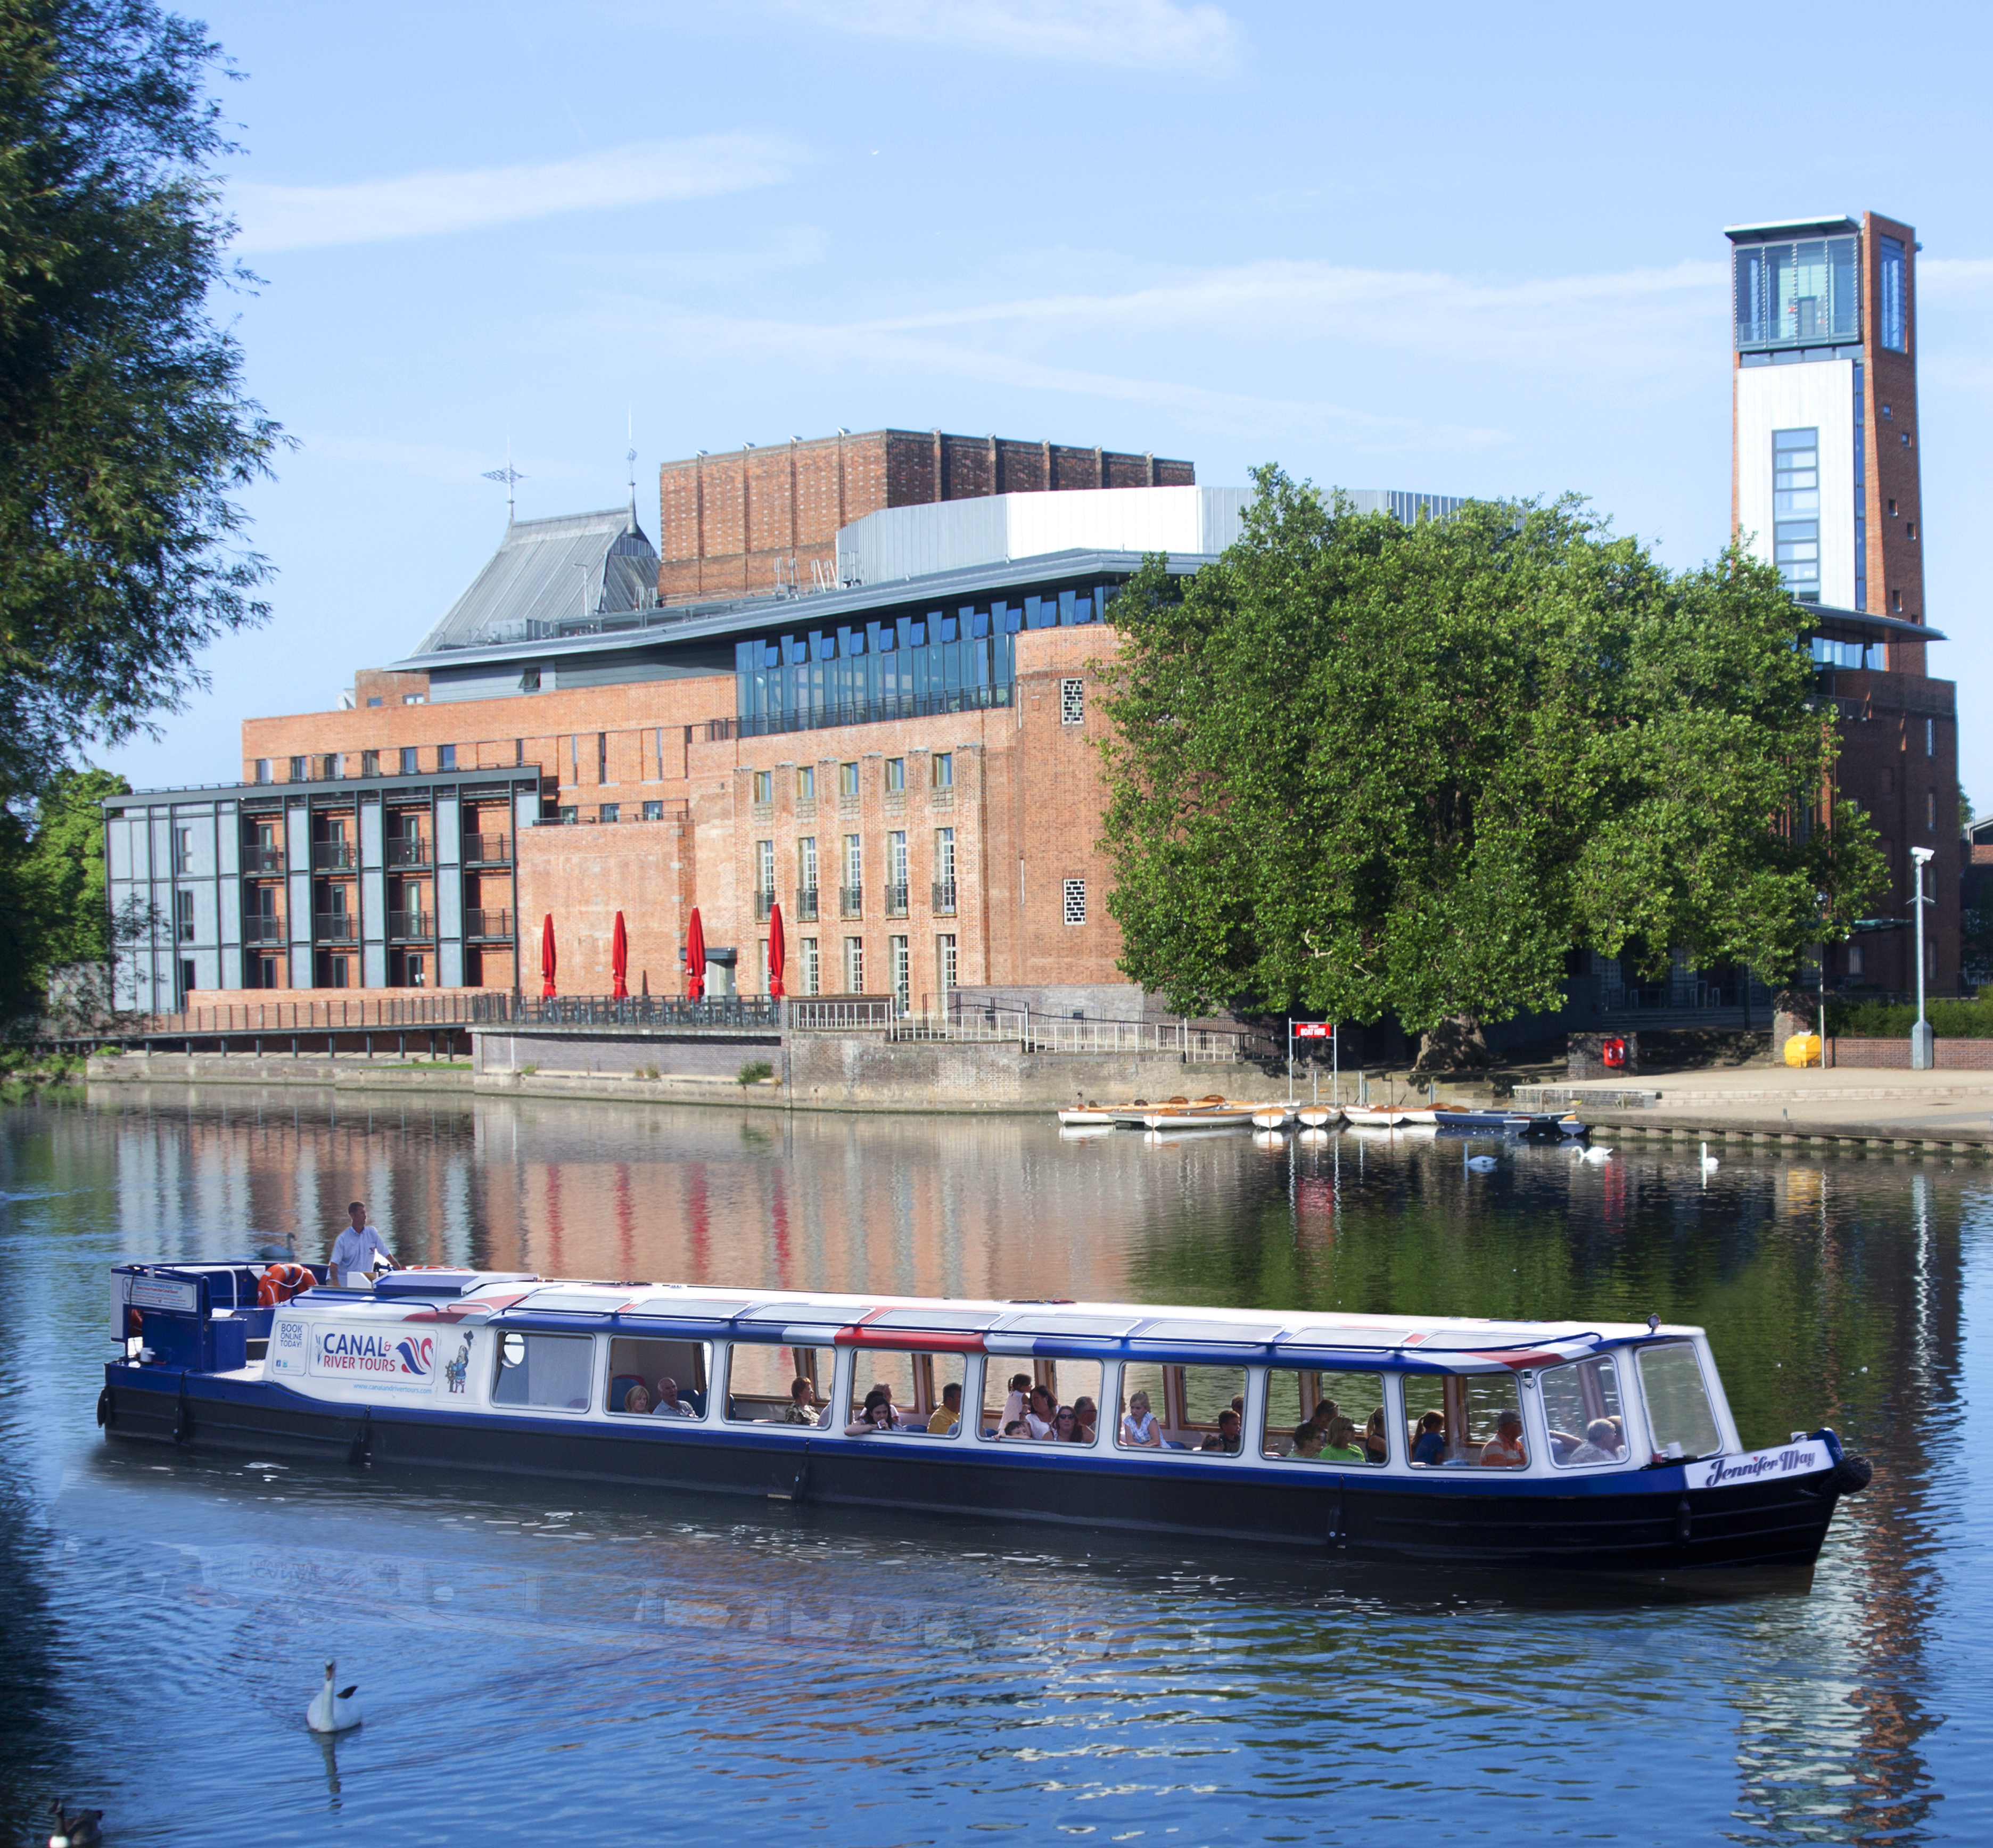 Take a relaxing boat ride along the River Avon